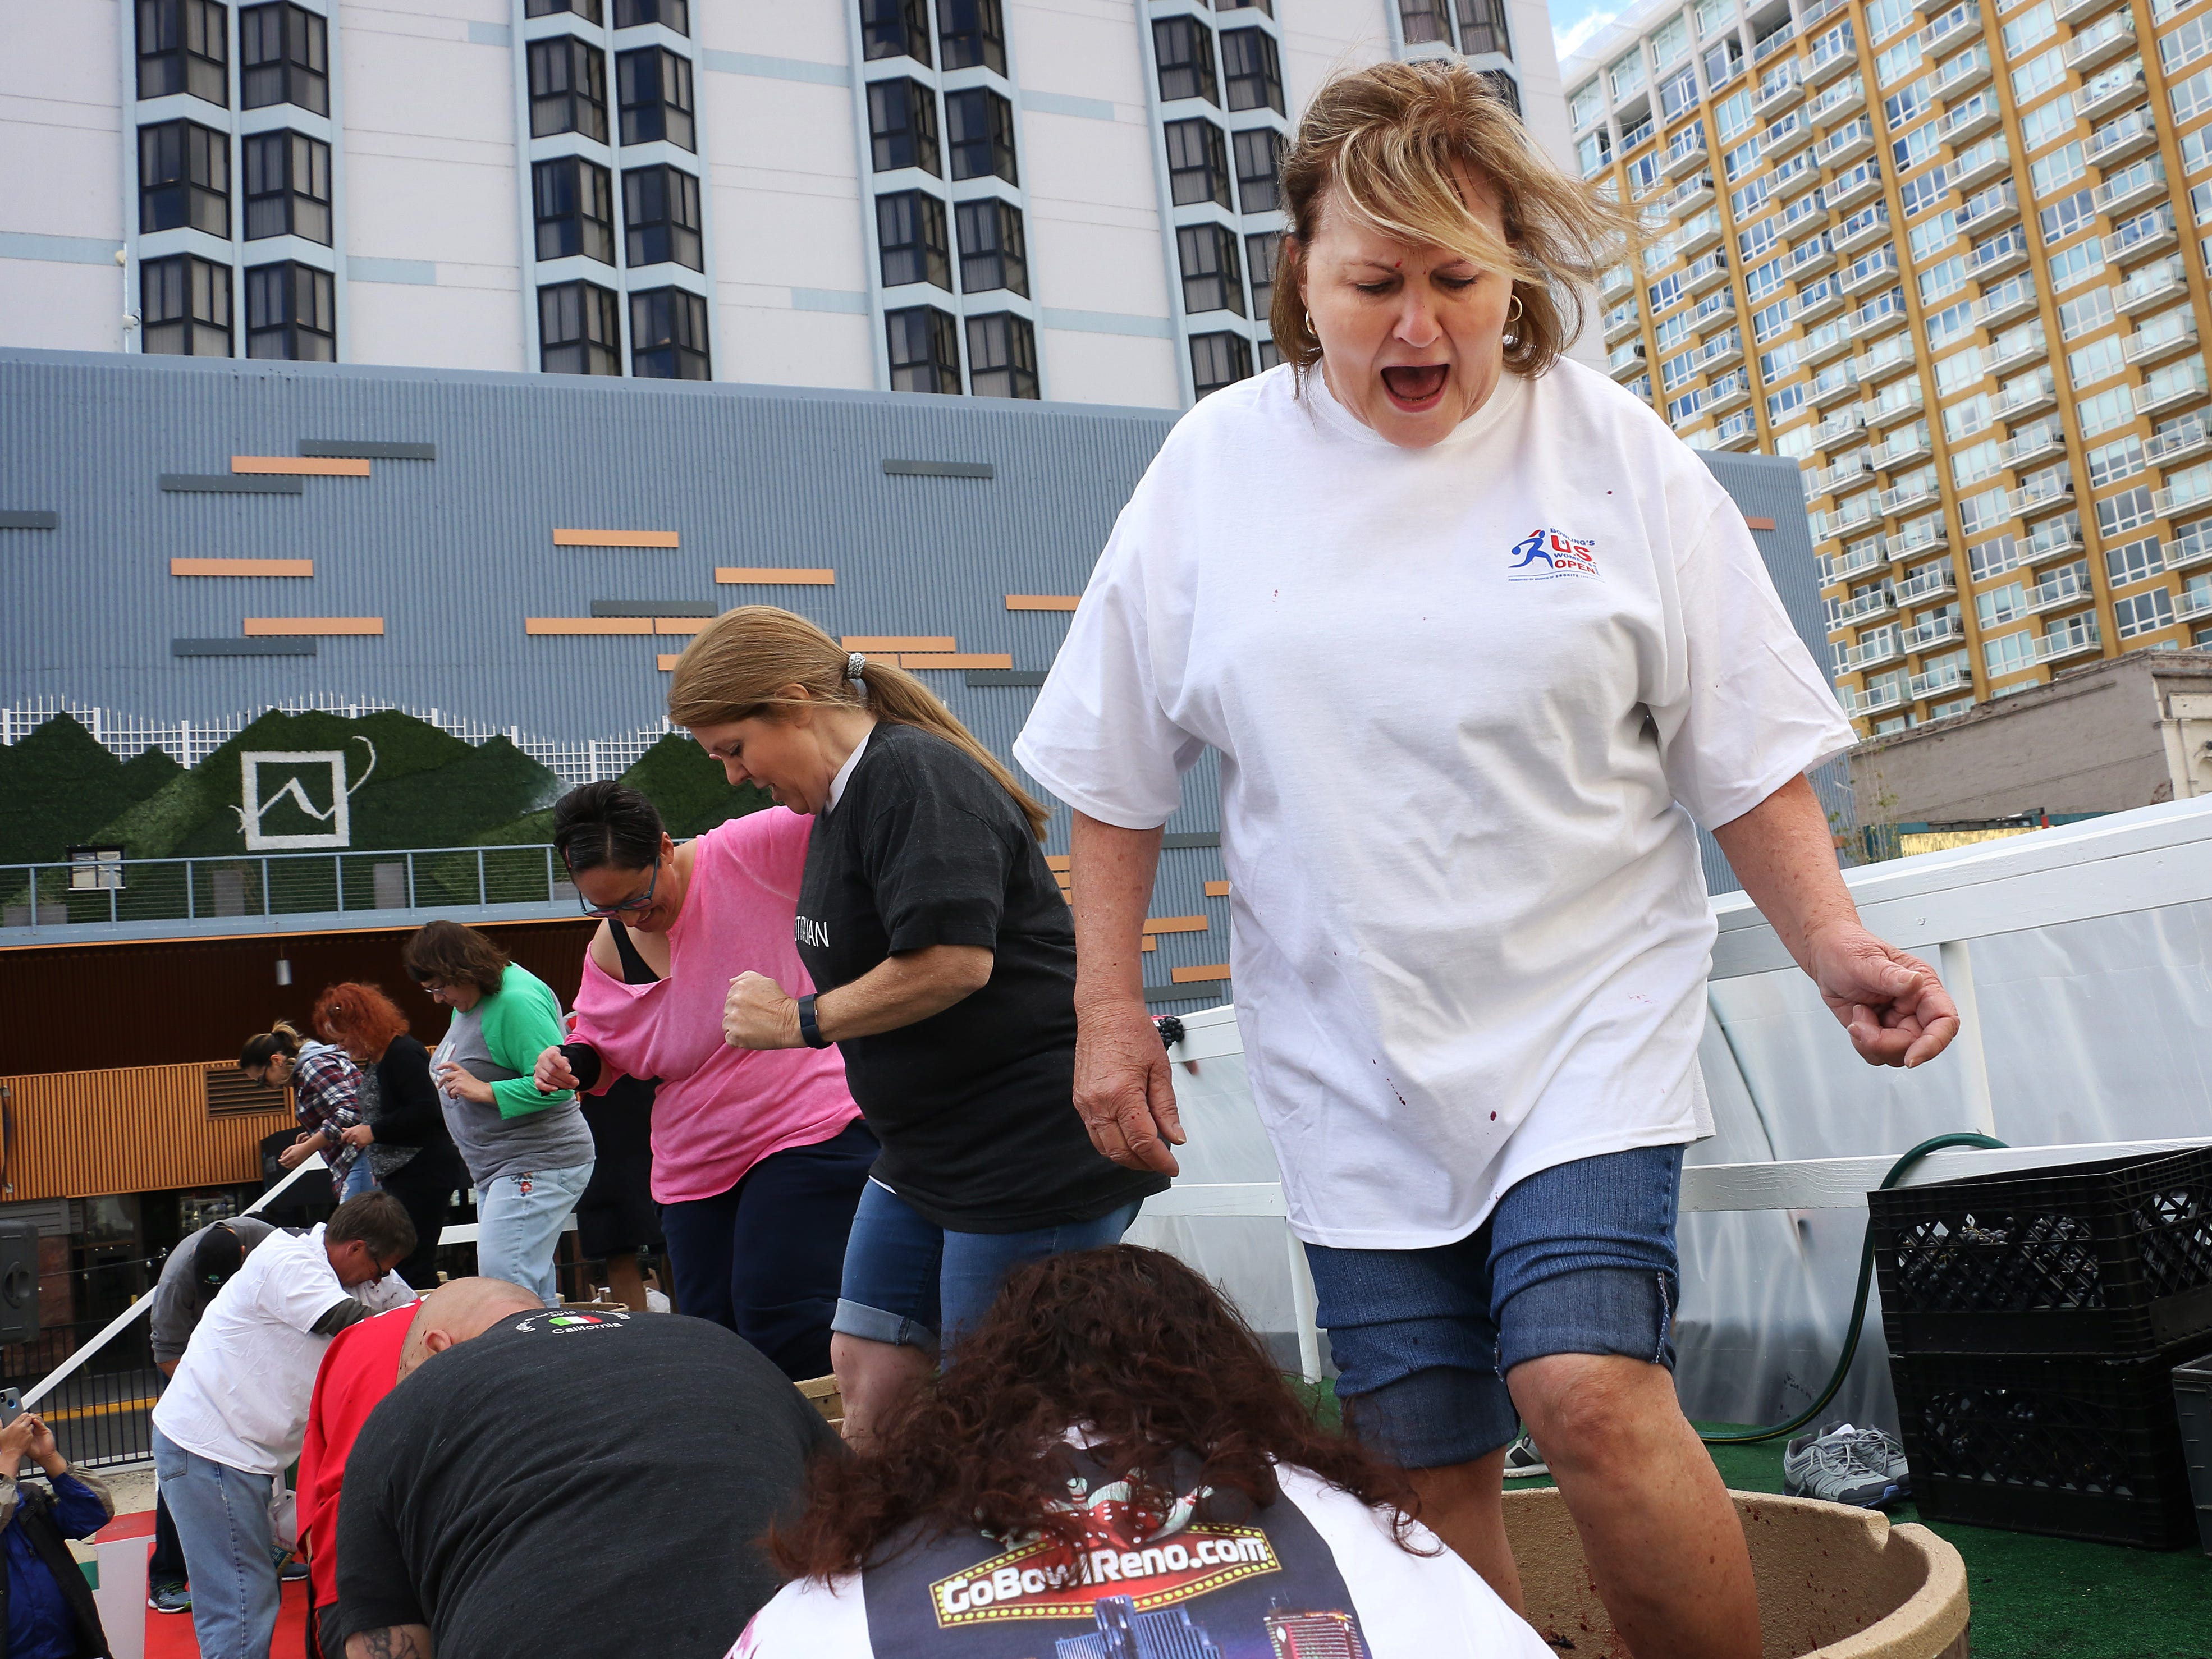 Kathi Lepore, right, participates in the grape stomping competition during the Eldorado Great Italian Festival in downtown Reno on Oct. 6, 2018.